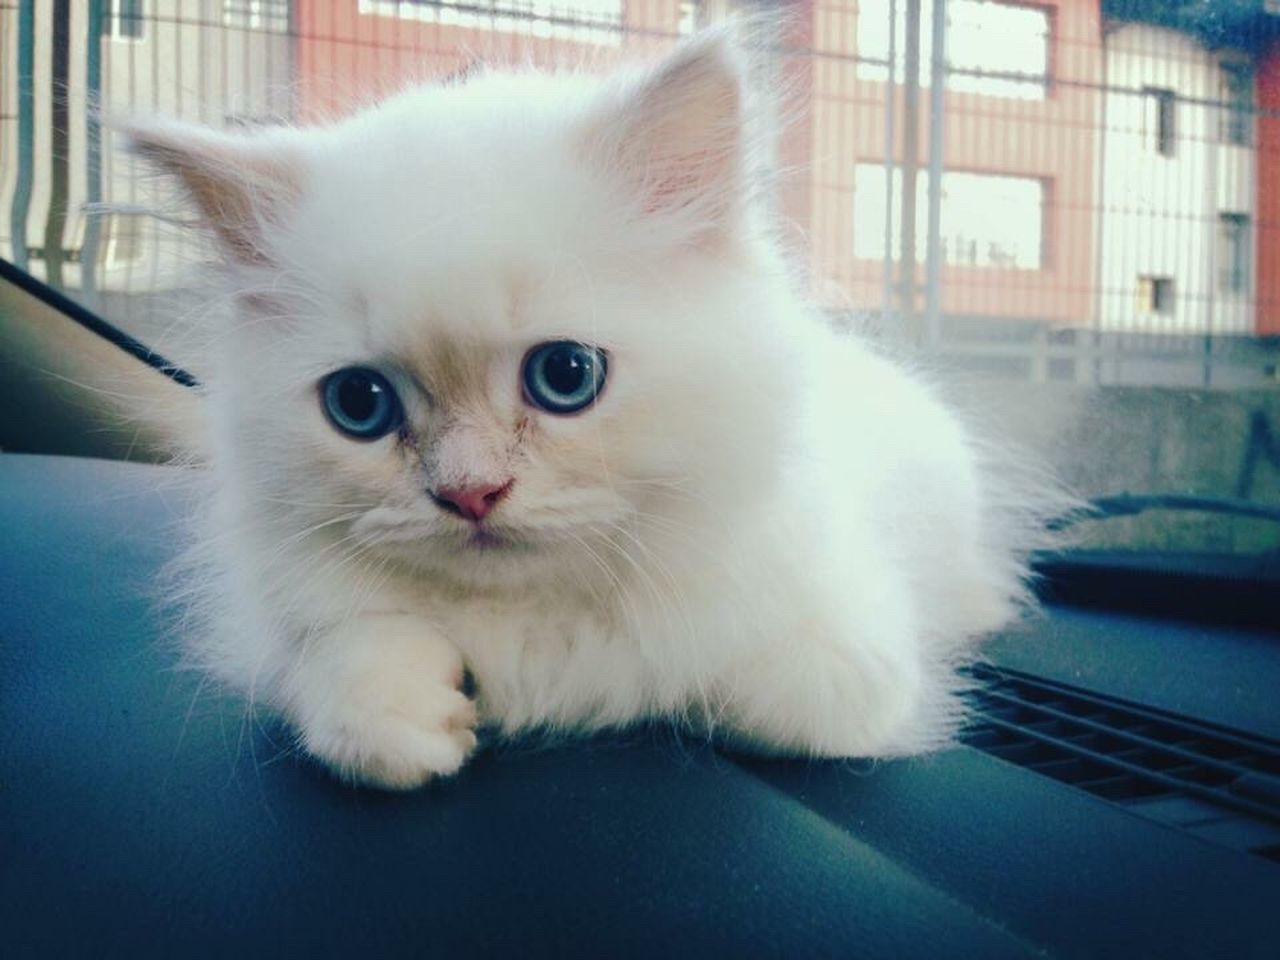 Rest In Peace ❤ Domestic Animals Pets Domestic Cat Animal Themes Mammal One Animal Feline Portrait Whisker Looking At Camera No People Close-up Persian Cat  Indoors  Day Your First Day With Me Cat Lovers Cats Of EyeEm Shawn Rest In Peace